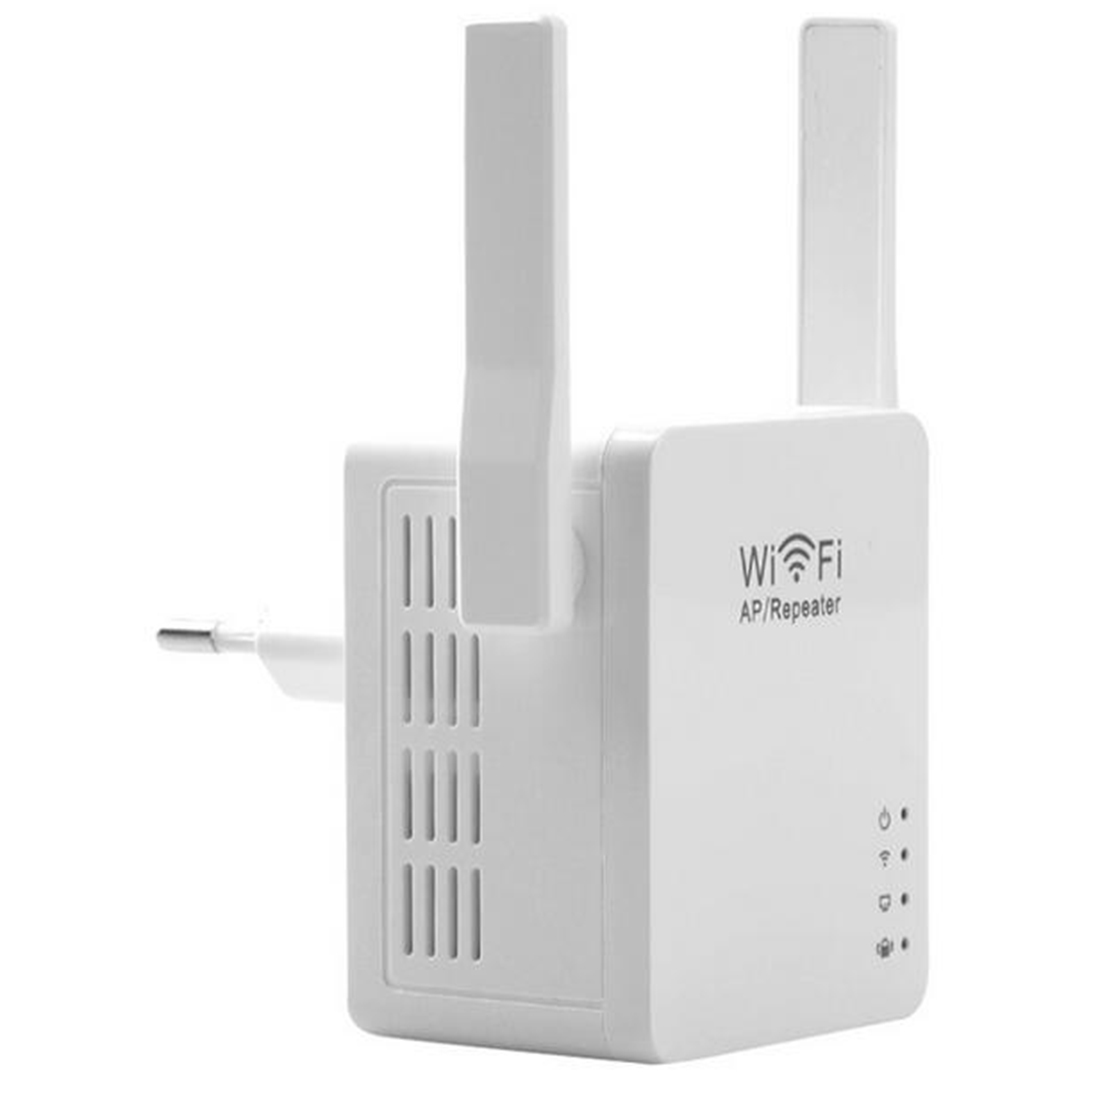 NOYOKERE New Wireless Wifi Repeater Network Router Expander Wifi Antenna Router Signal Amplifier Repeater